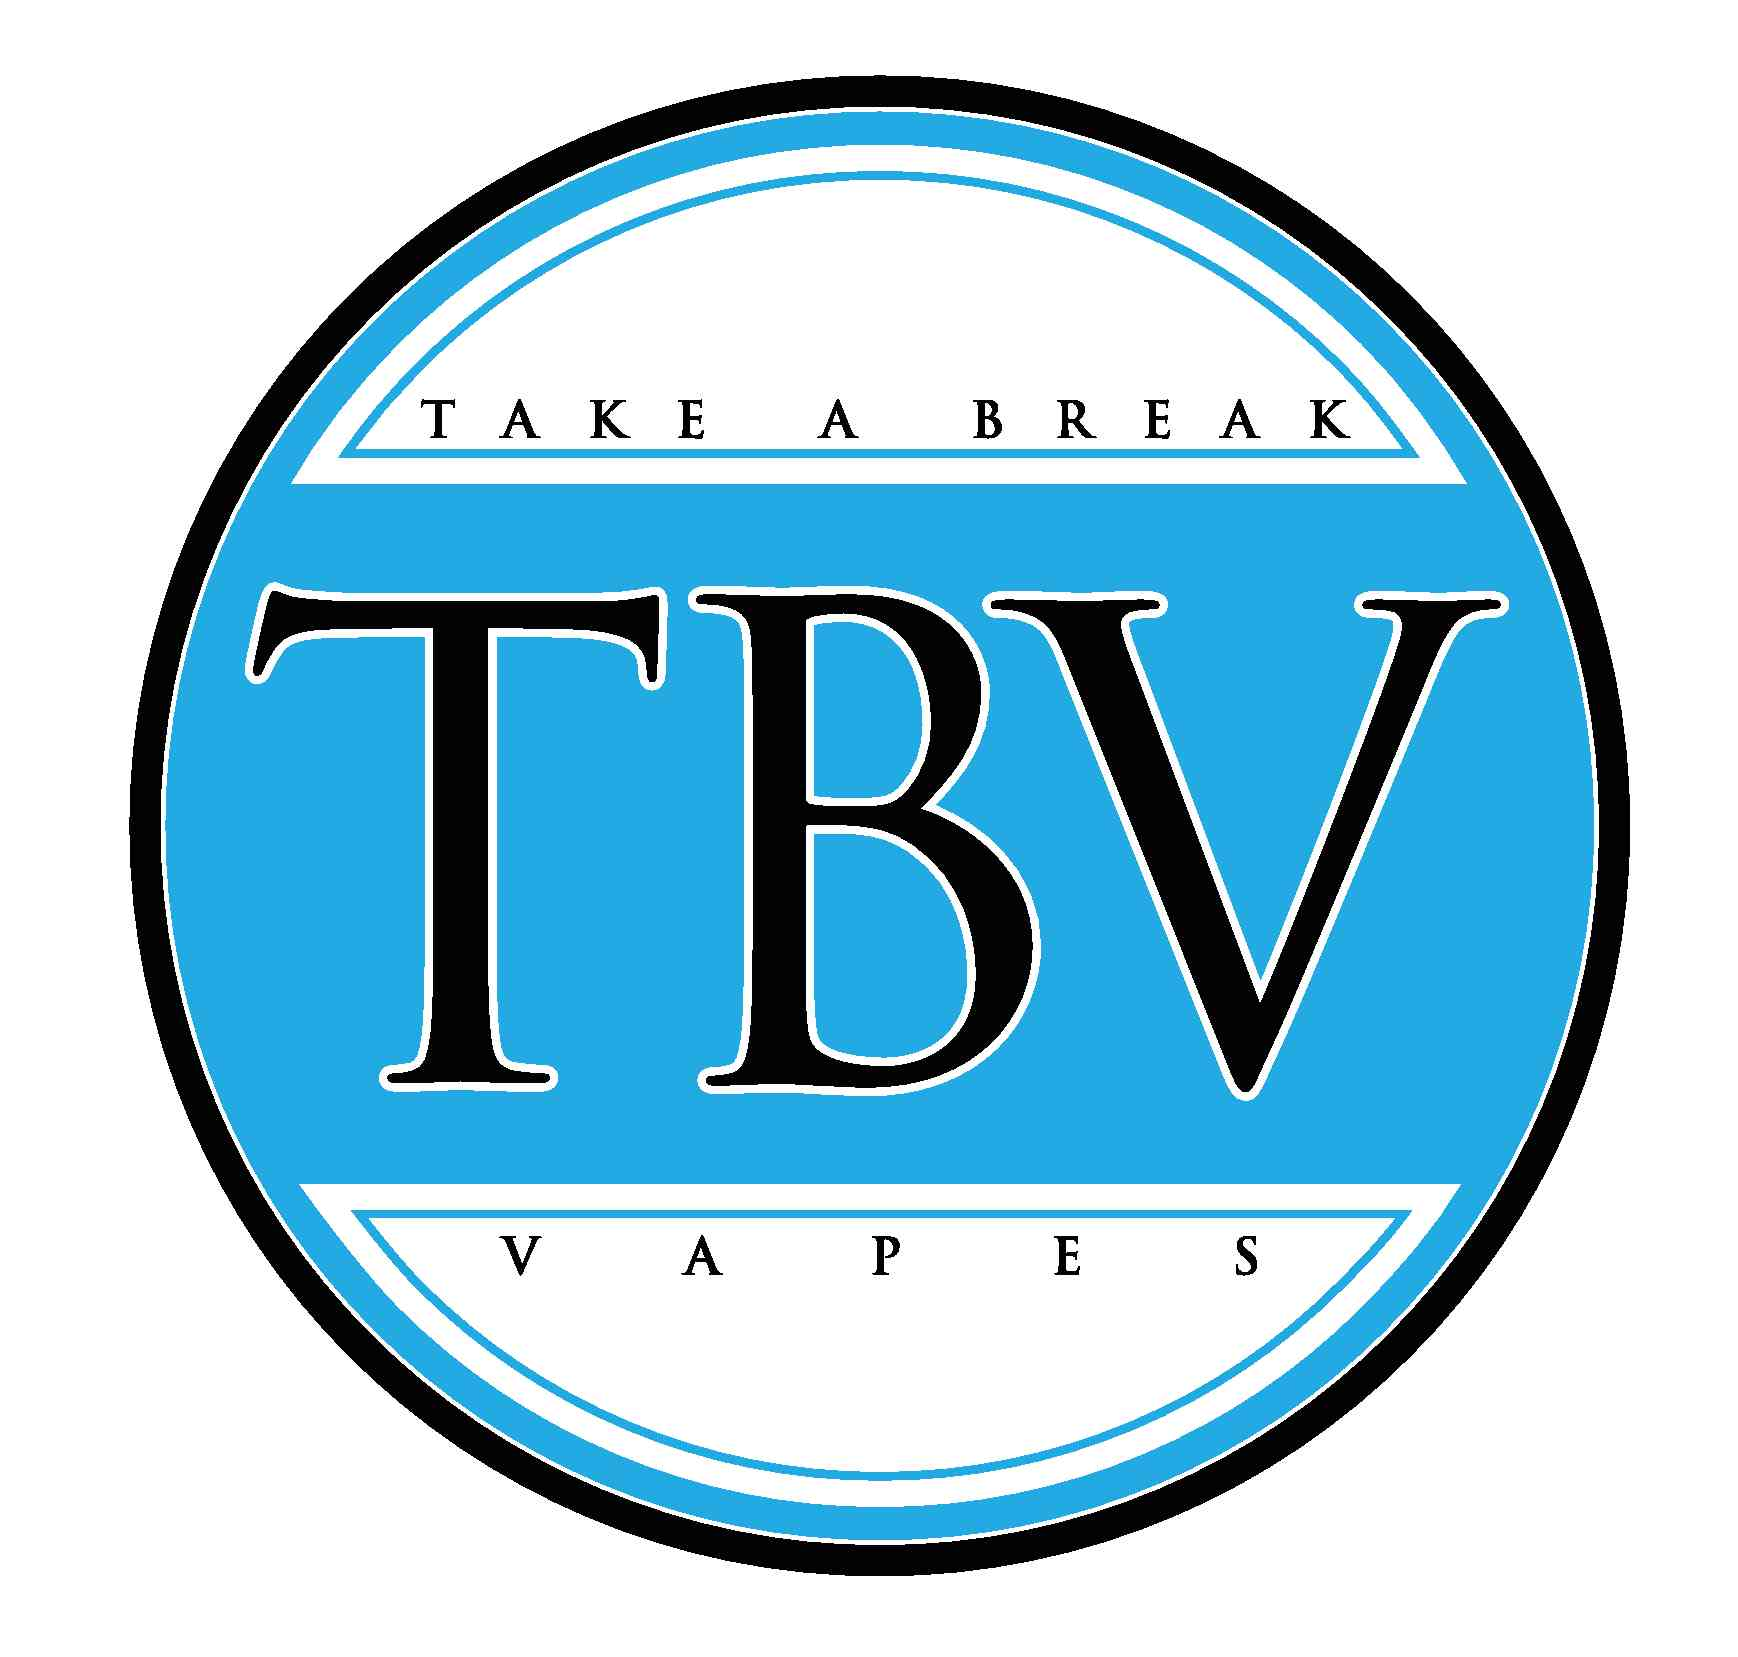 Take A Break Vapes